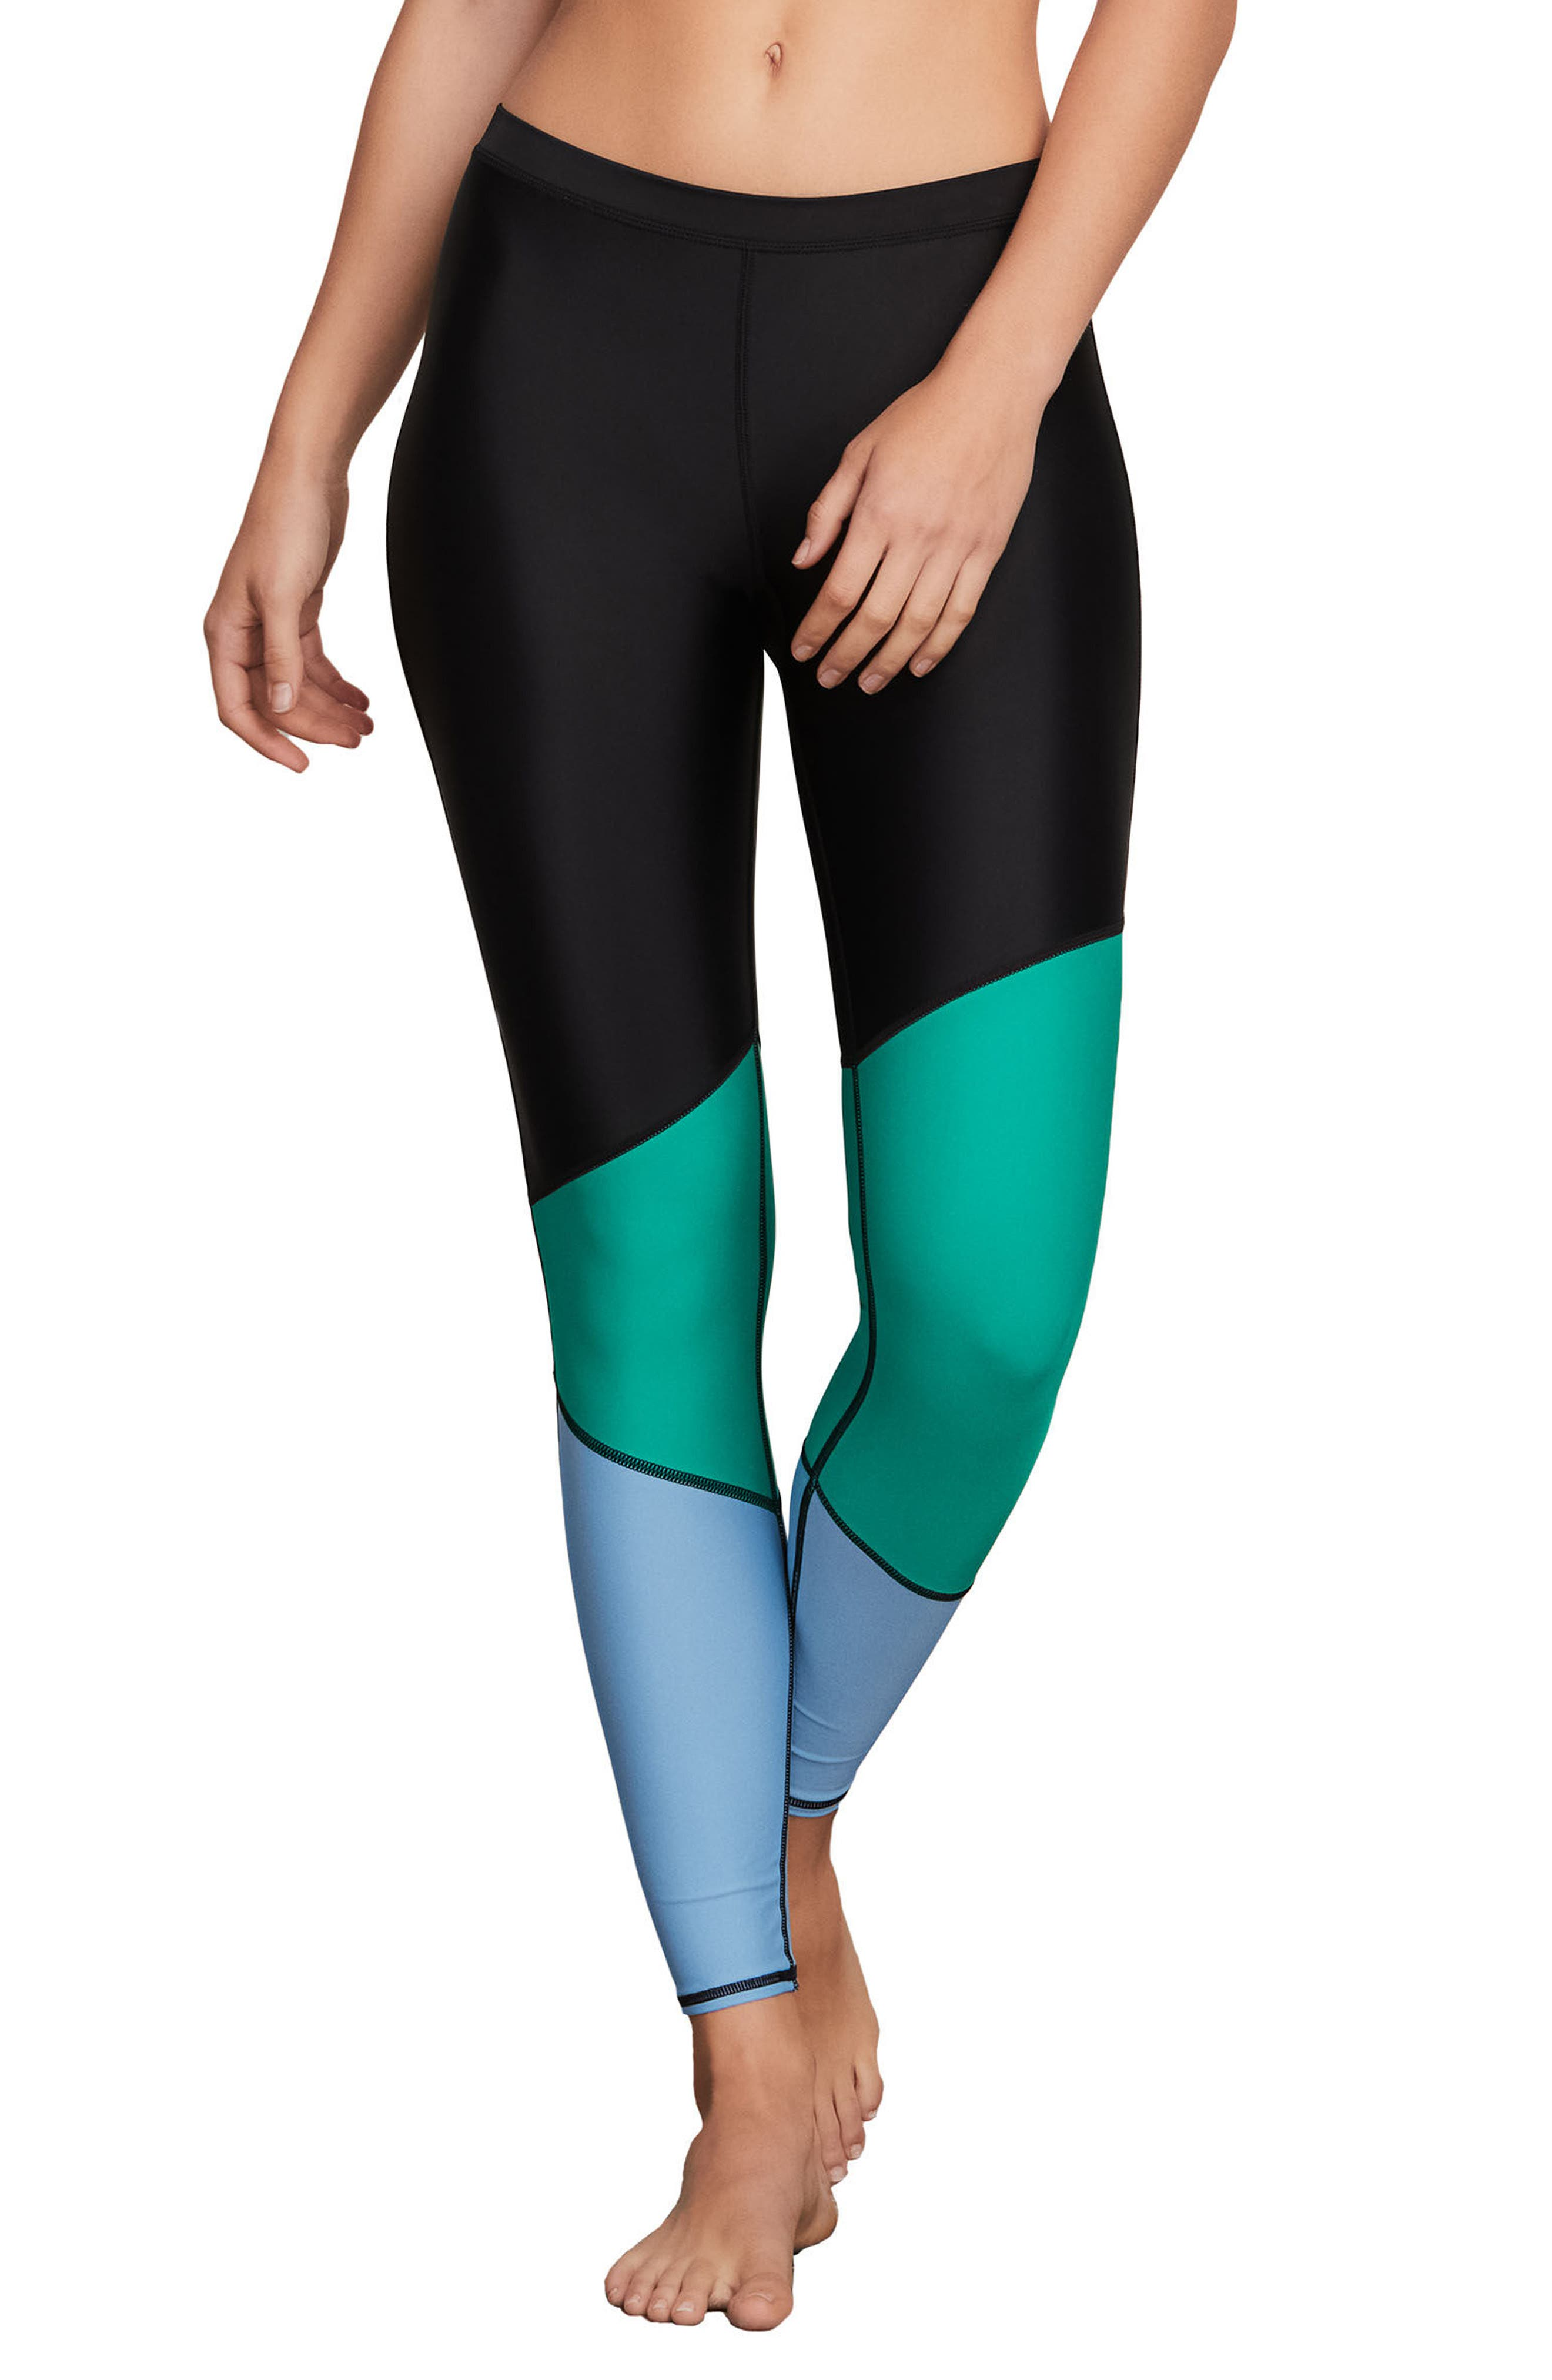 Simply Solid Leggings,                             Main thumbnail 1, color,                             Green Spry